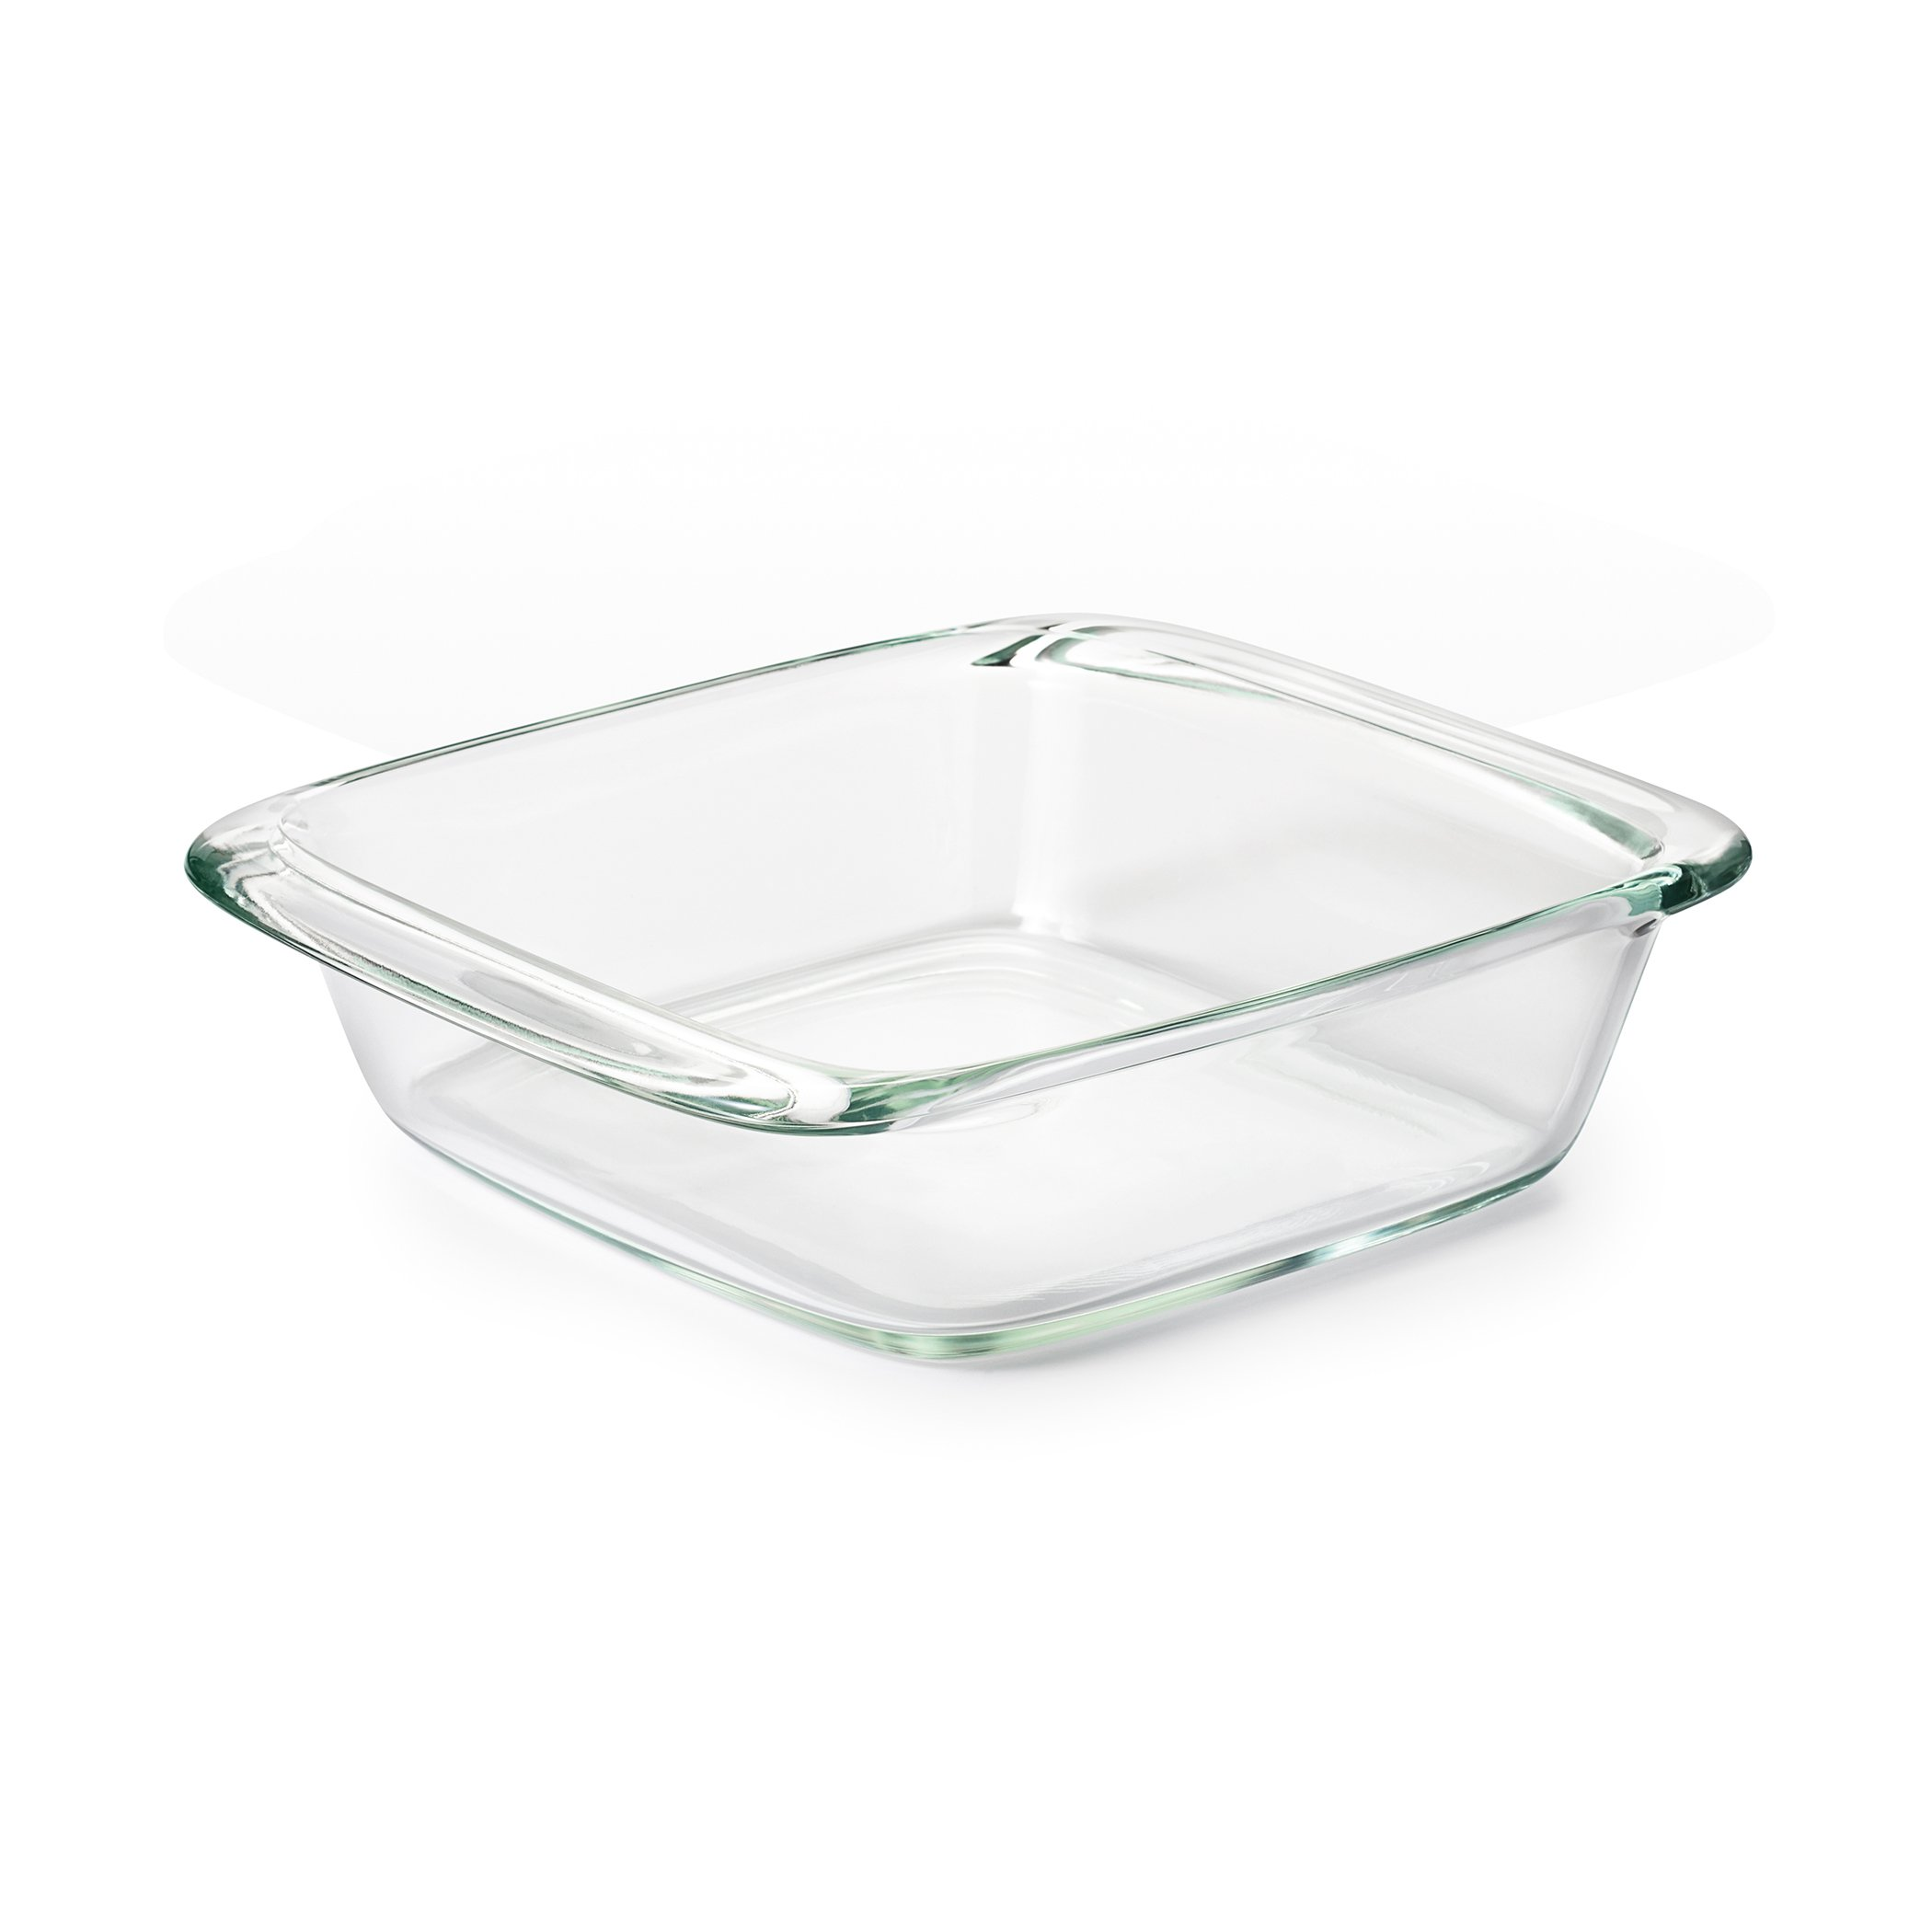 OXO Good Grips 8 Piece Freezer-to-Oven Safe Glass Bake, Serve and Store Set by OXO (Image #13)